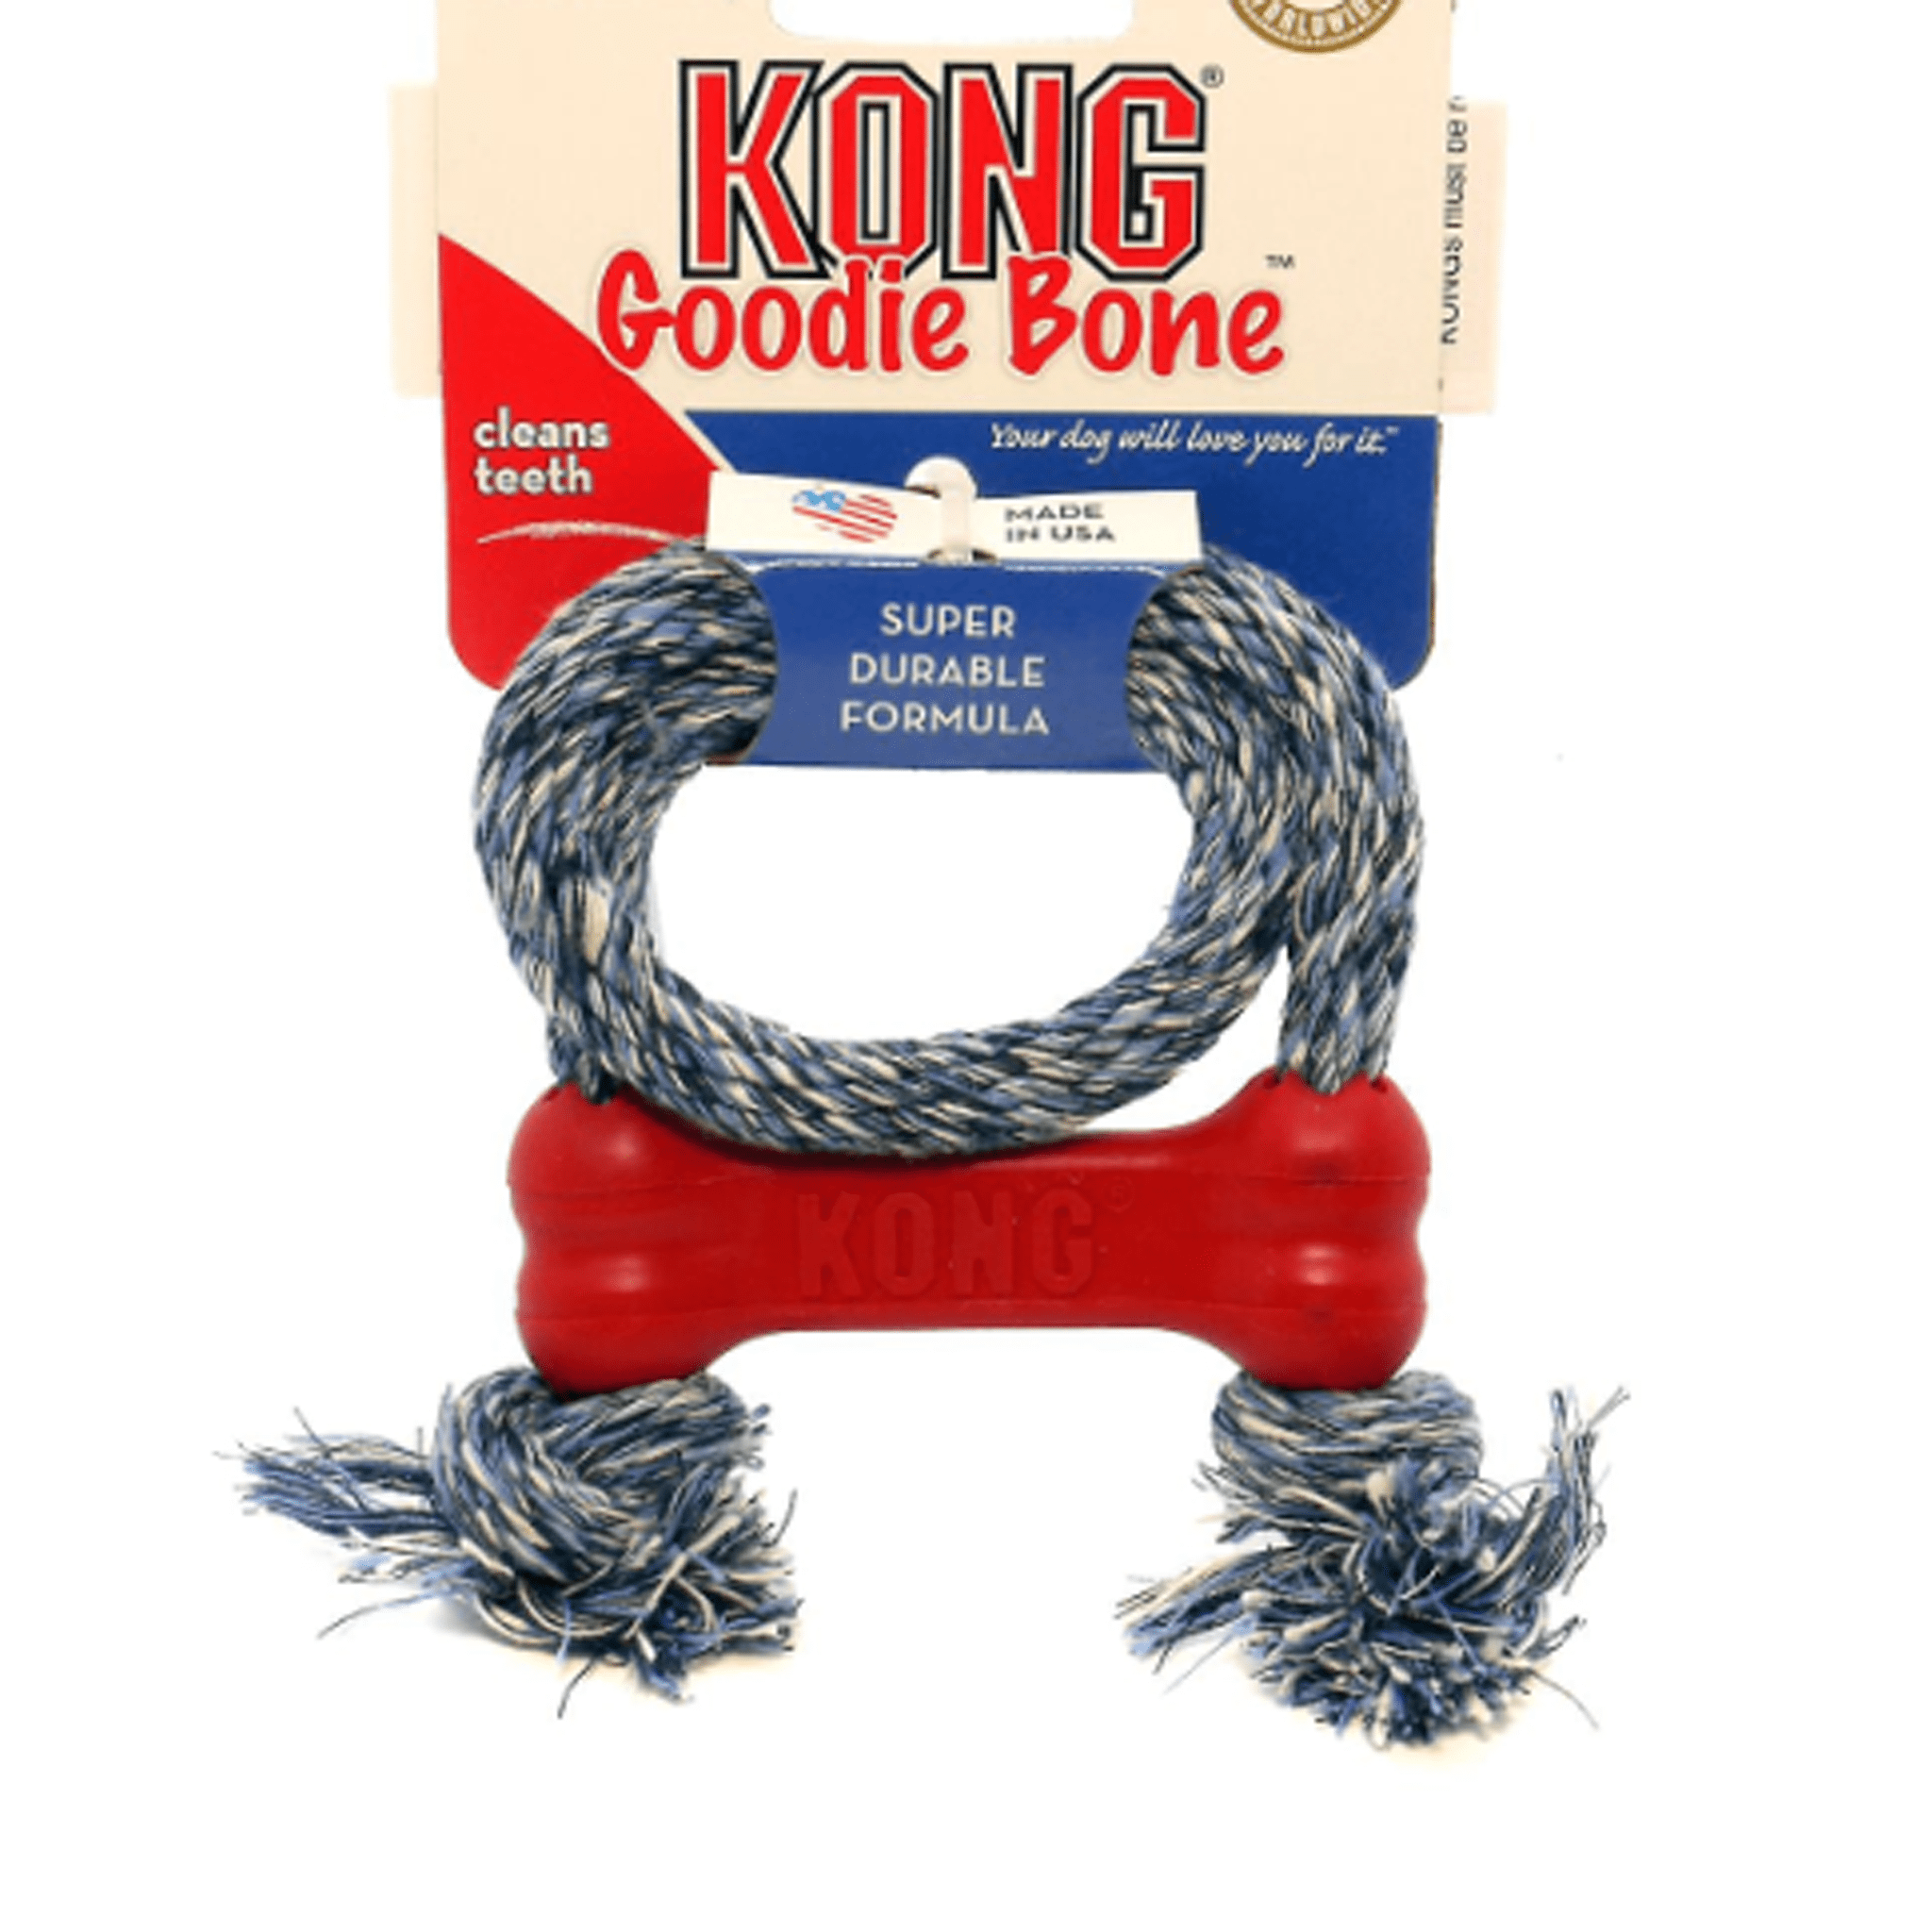 Kong Goodie Bone Extreme with Rope KON0355